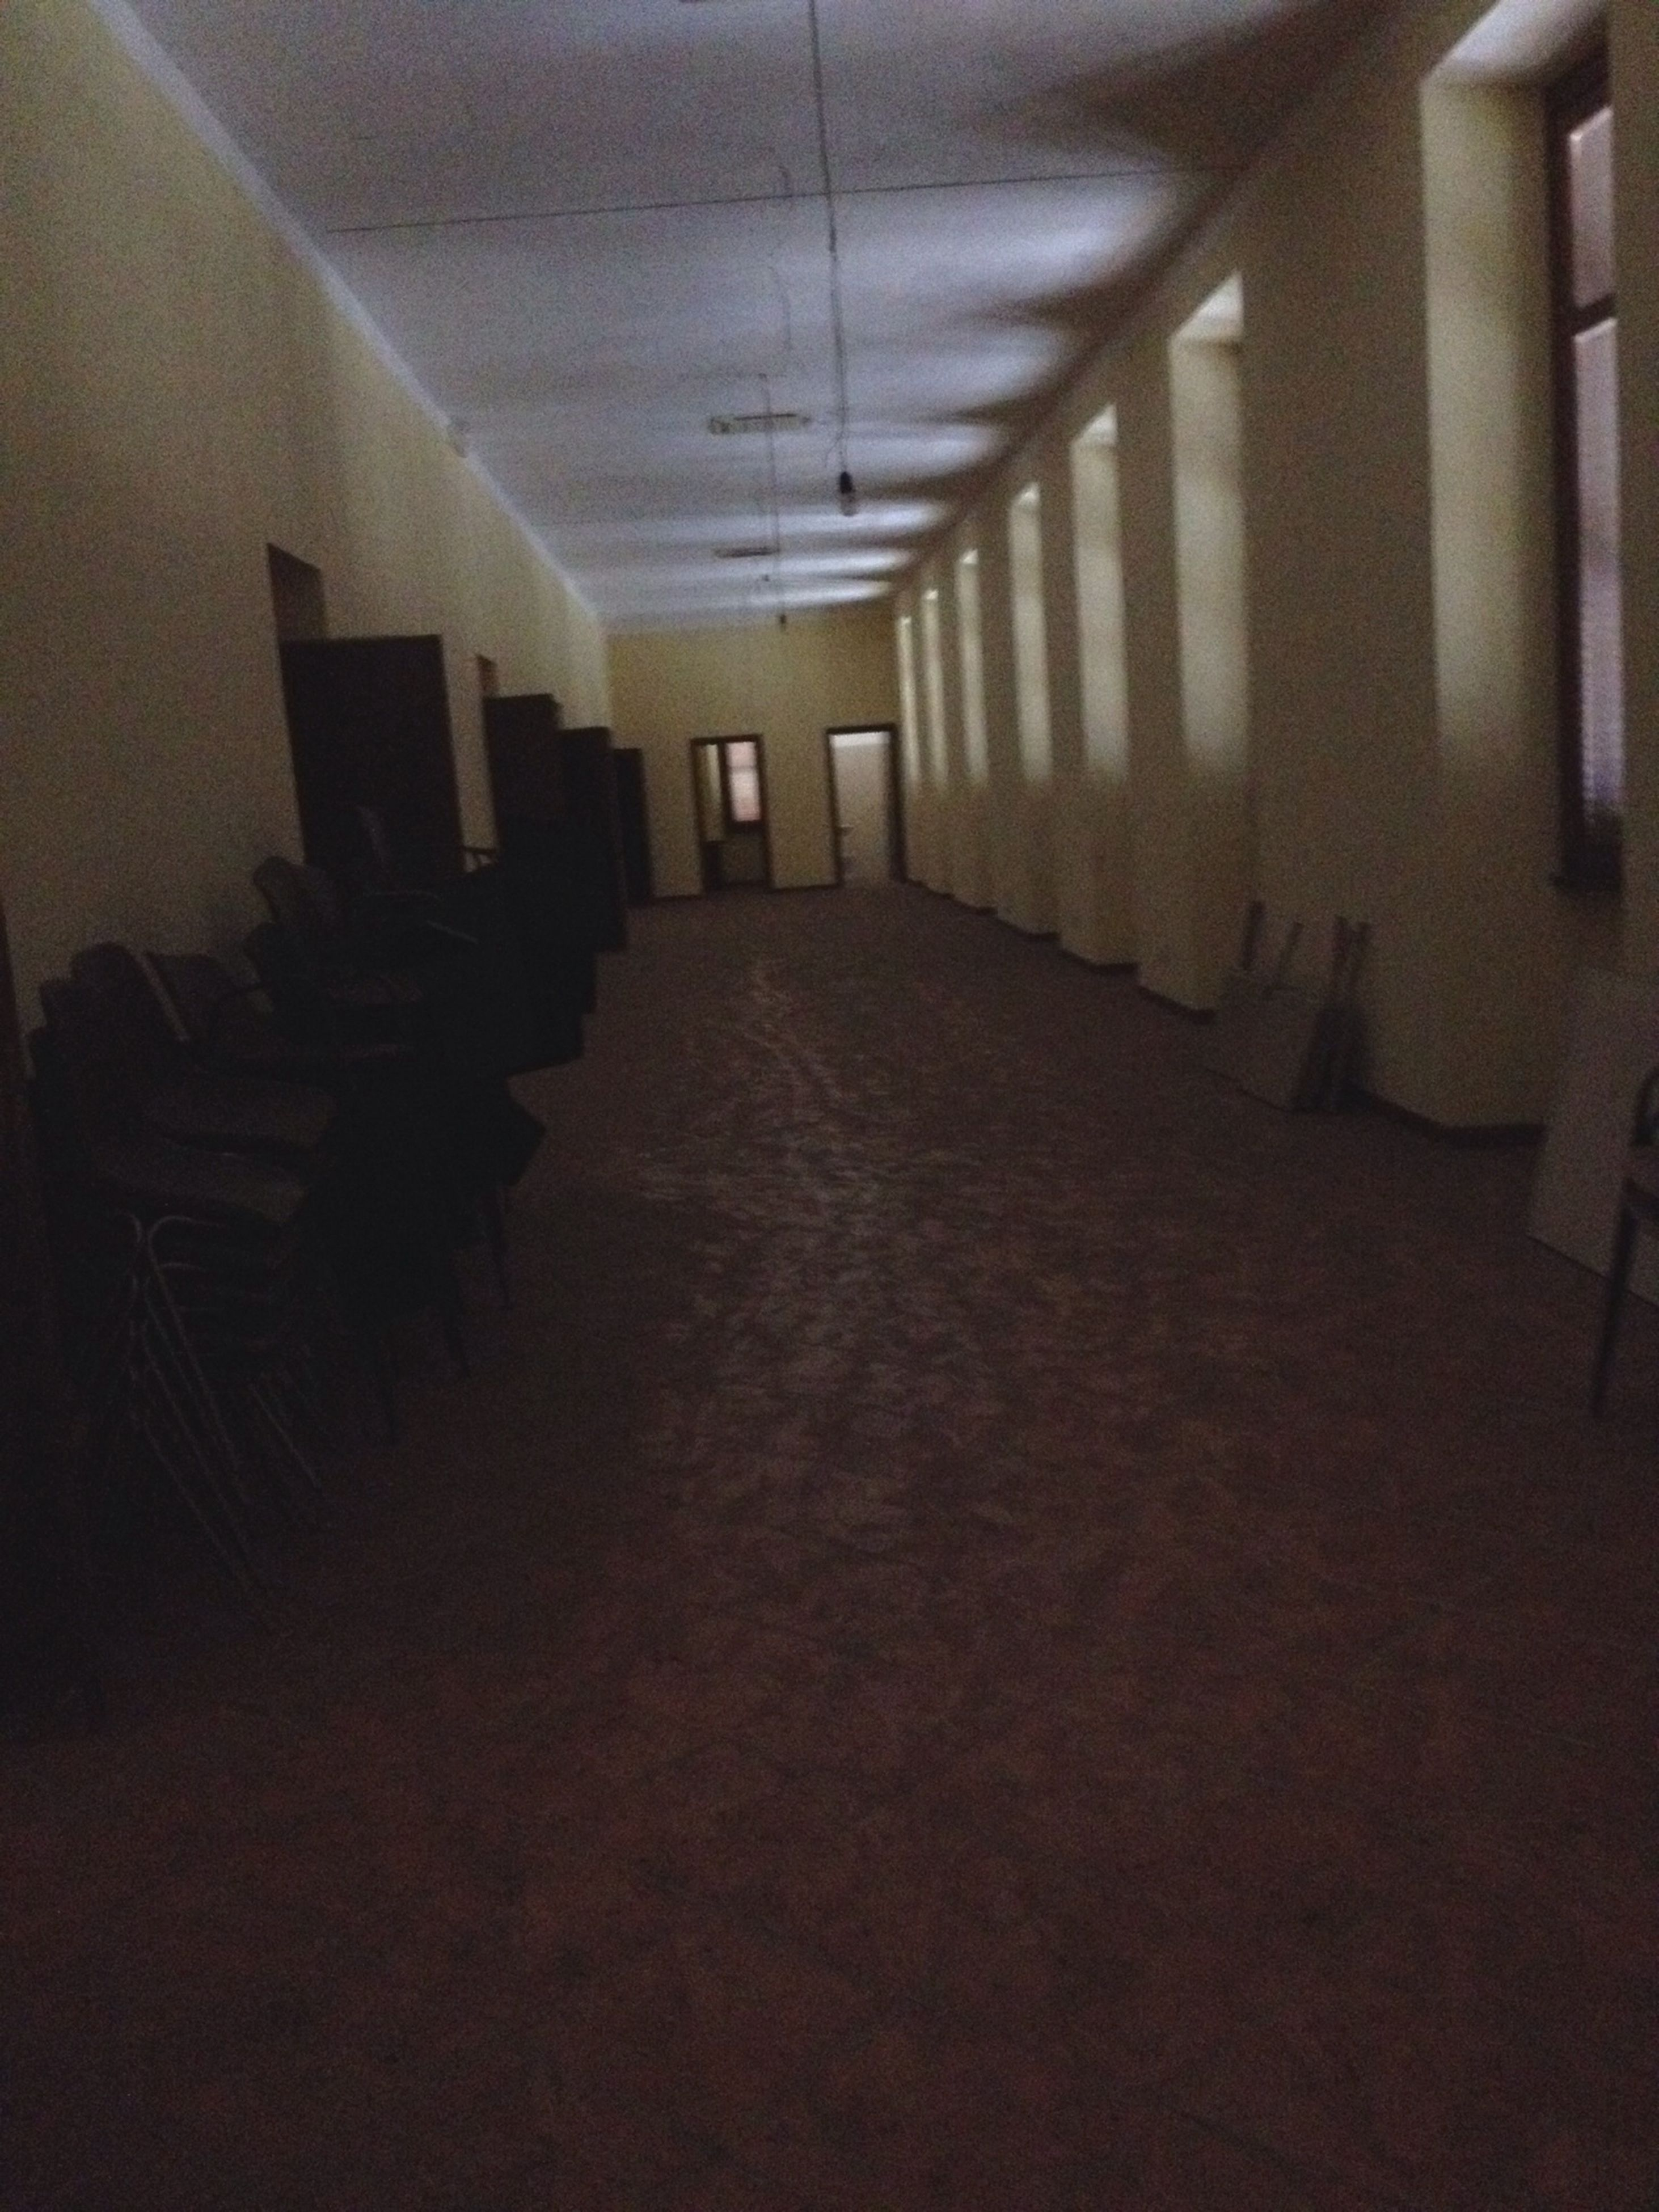 indoors, architecture, built structure, the way forward, diminishing perspective, empty, building, ceiling, corridor, narrow, lighting equipment, illuminated, wall - building feature, absence, building exterior, vanishing point, sunlight, no people, shadow, wall